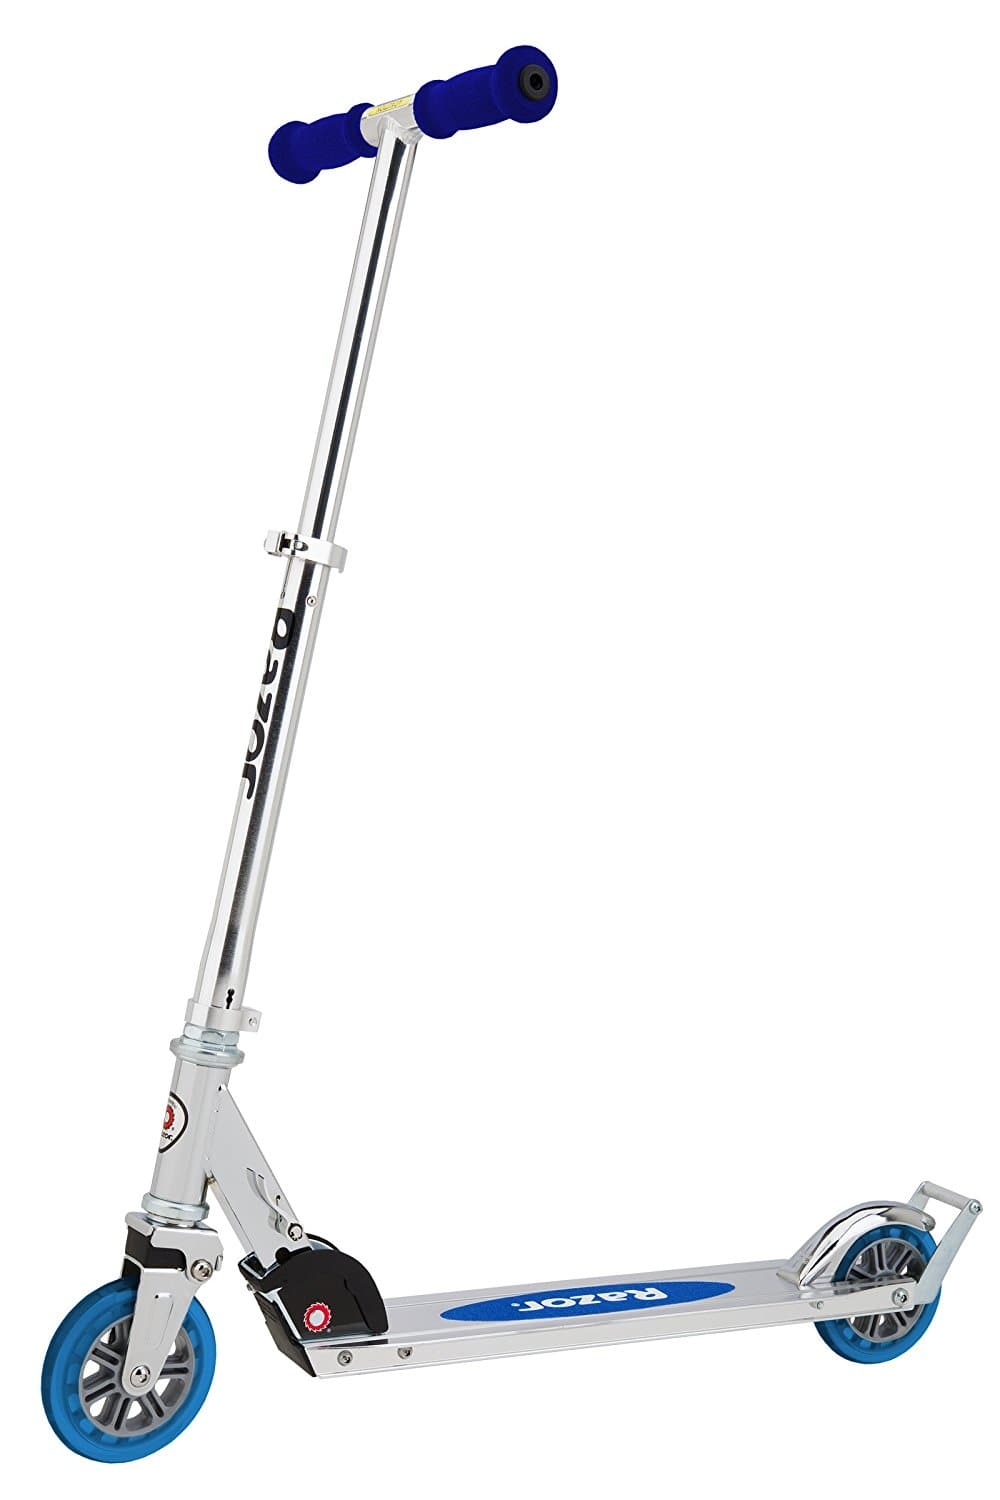 Razor Authentic A3 Kick Scooter (Blue color) $26.60 + Free Store Pick up Or Shipping w/Prime